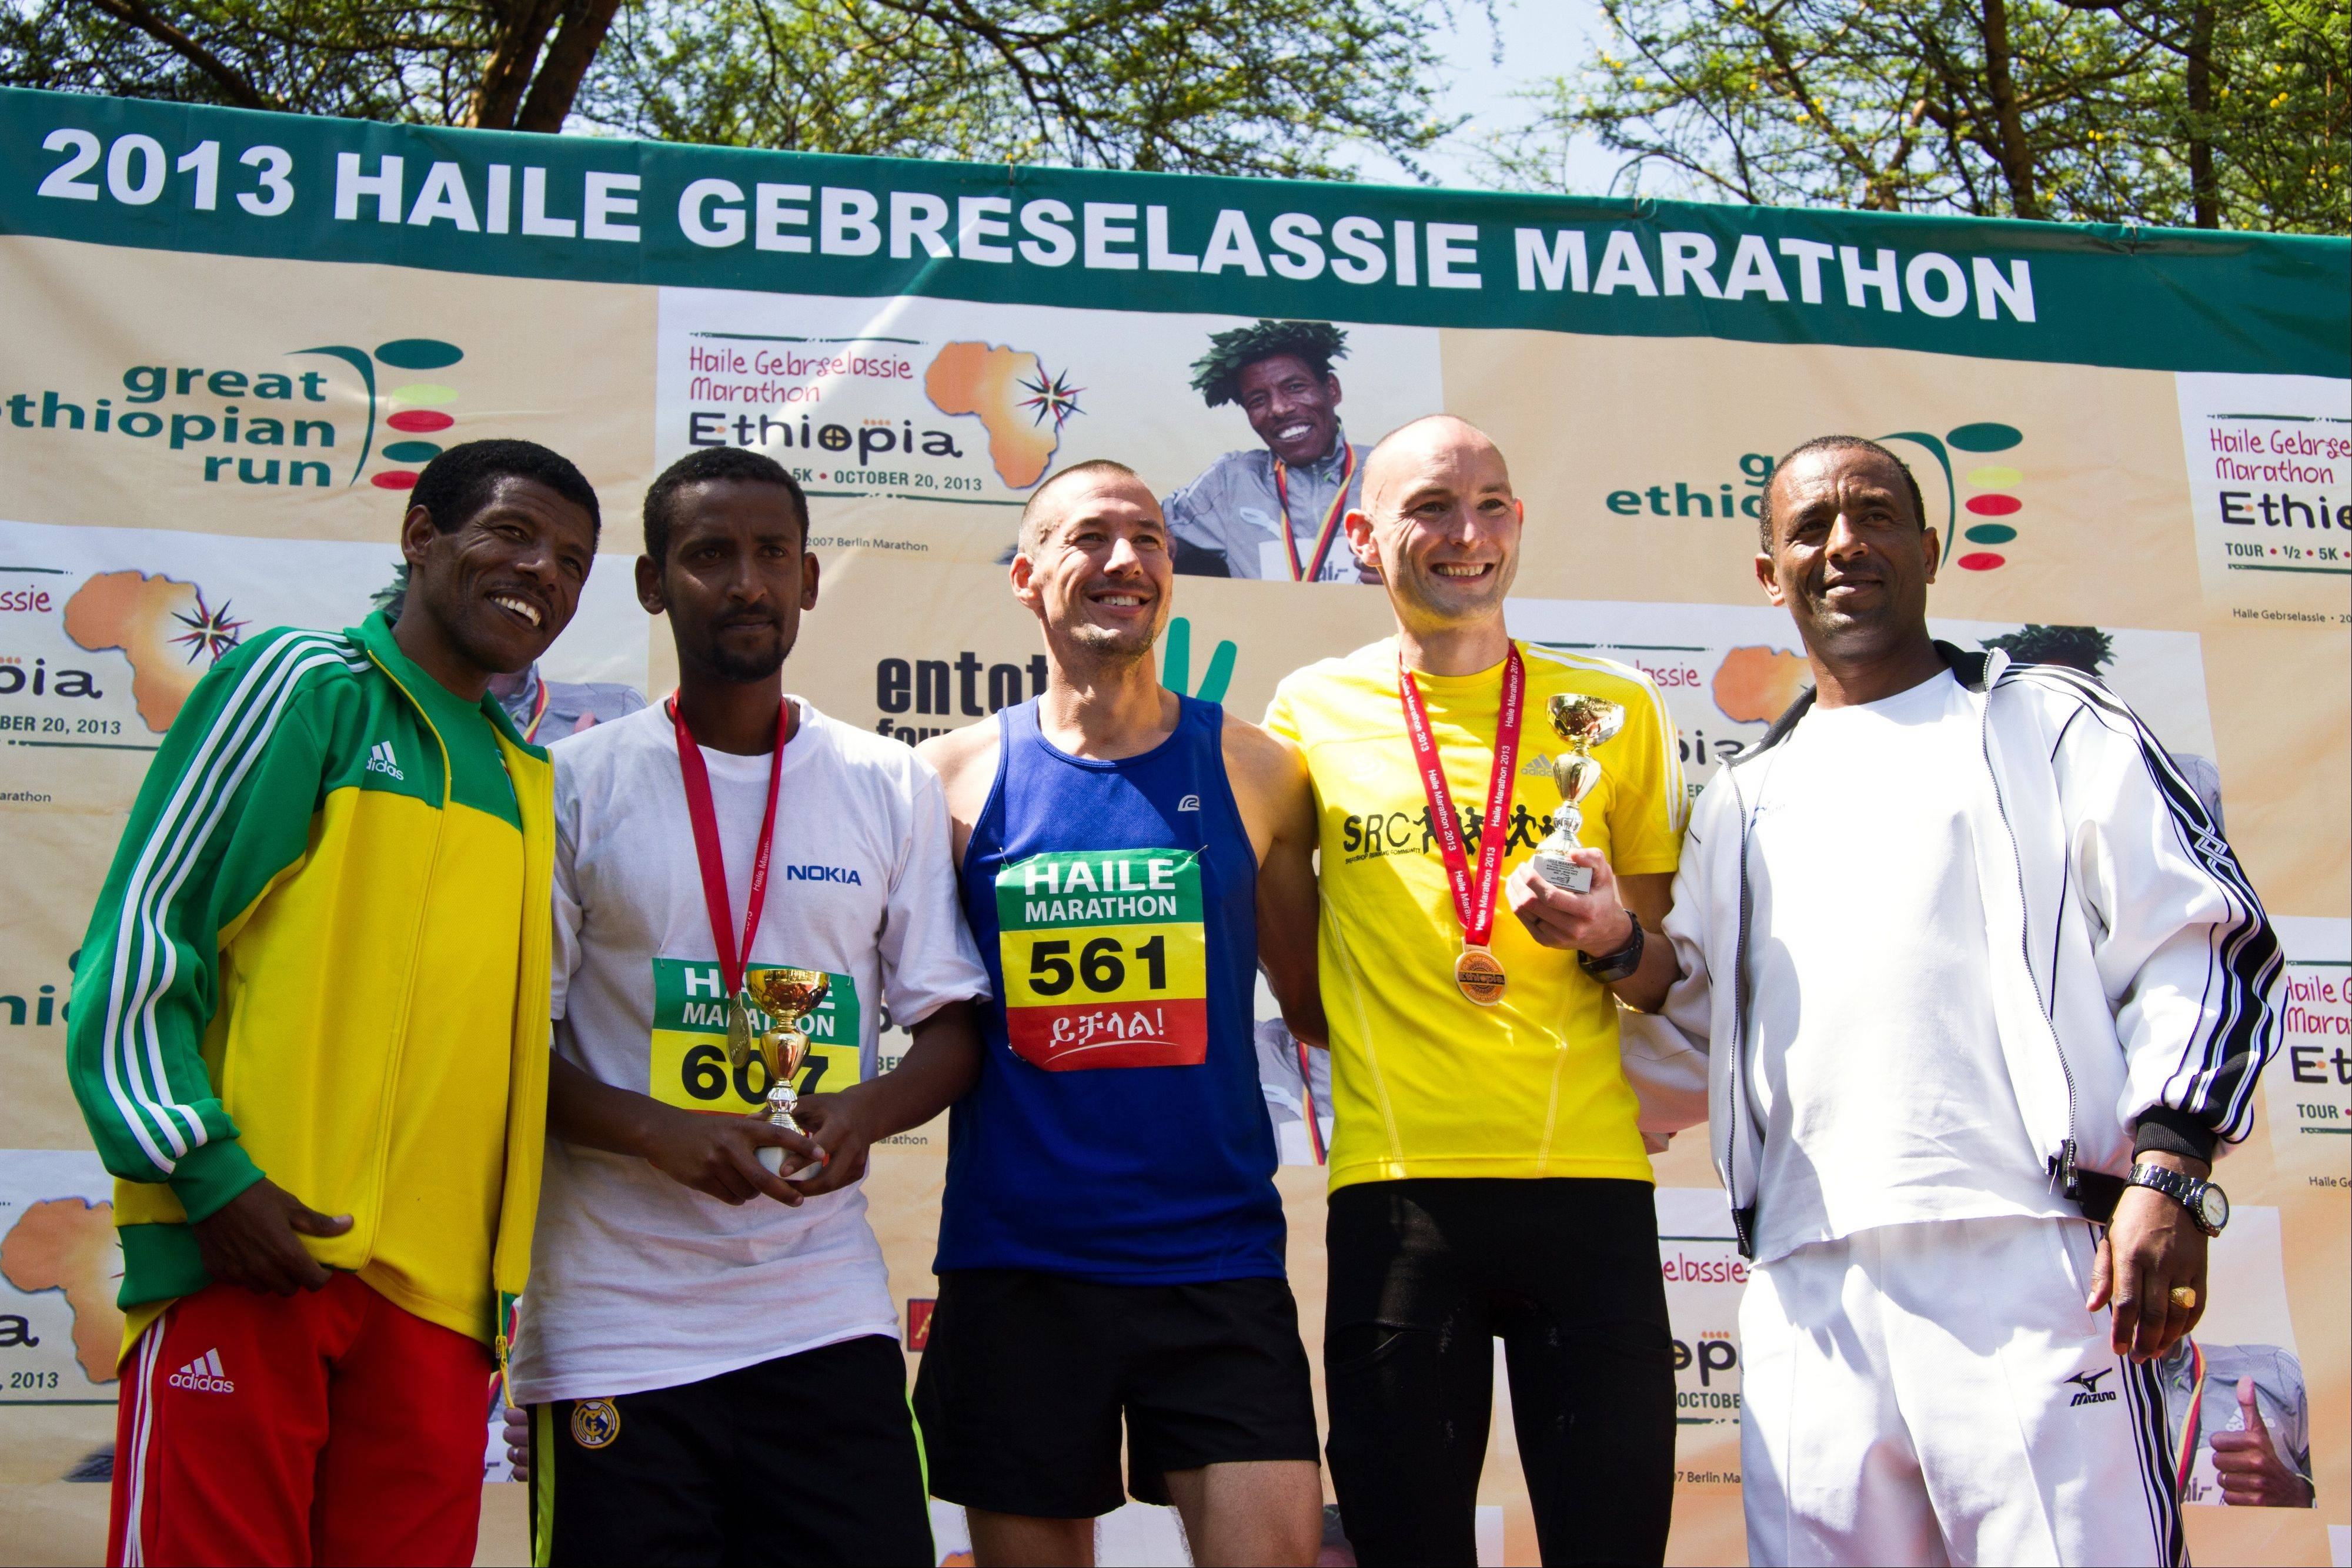 Jason Dolan, center, of Inverness, poses for photos after winning first place in the 2013 Haile Gebreselassie Marathon Oct. 20 in southern Ethiopia. The marathon had two divisions: one for elite Ethiopian runners, and one for foreign runners called the International Mass Marathon. Dolan won in the latter division. Pictured from left to right are race namesake Gebrselassie, third place finisher Esayas Yayneshet, Dolan, second place winner Simon Newton from Great Britain, and Ethiopian marathoner Belay Welasha. Not pictured is Megan McClowry, of Naperville, who won the marathon's women's division.